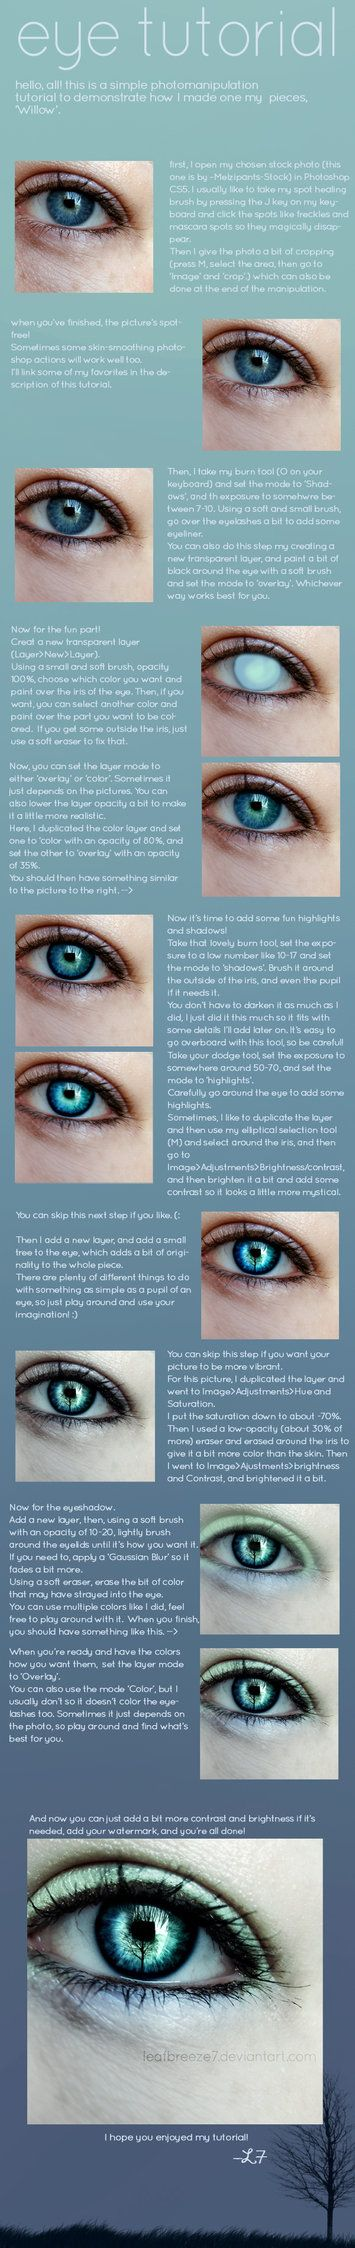 This is a eye photomanipulation walkthrough for one of my pieces, 'Willow'. It was made using Photoshop CS5, but I'm sure later version have the same tools. (: I don't in any way whatsoever claim t...